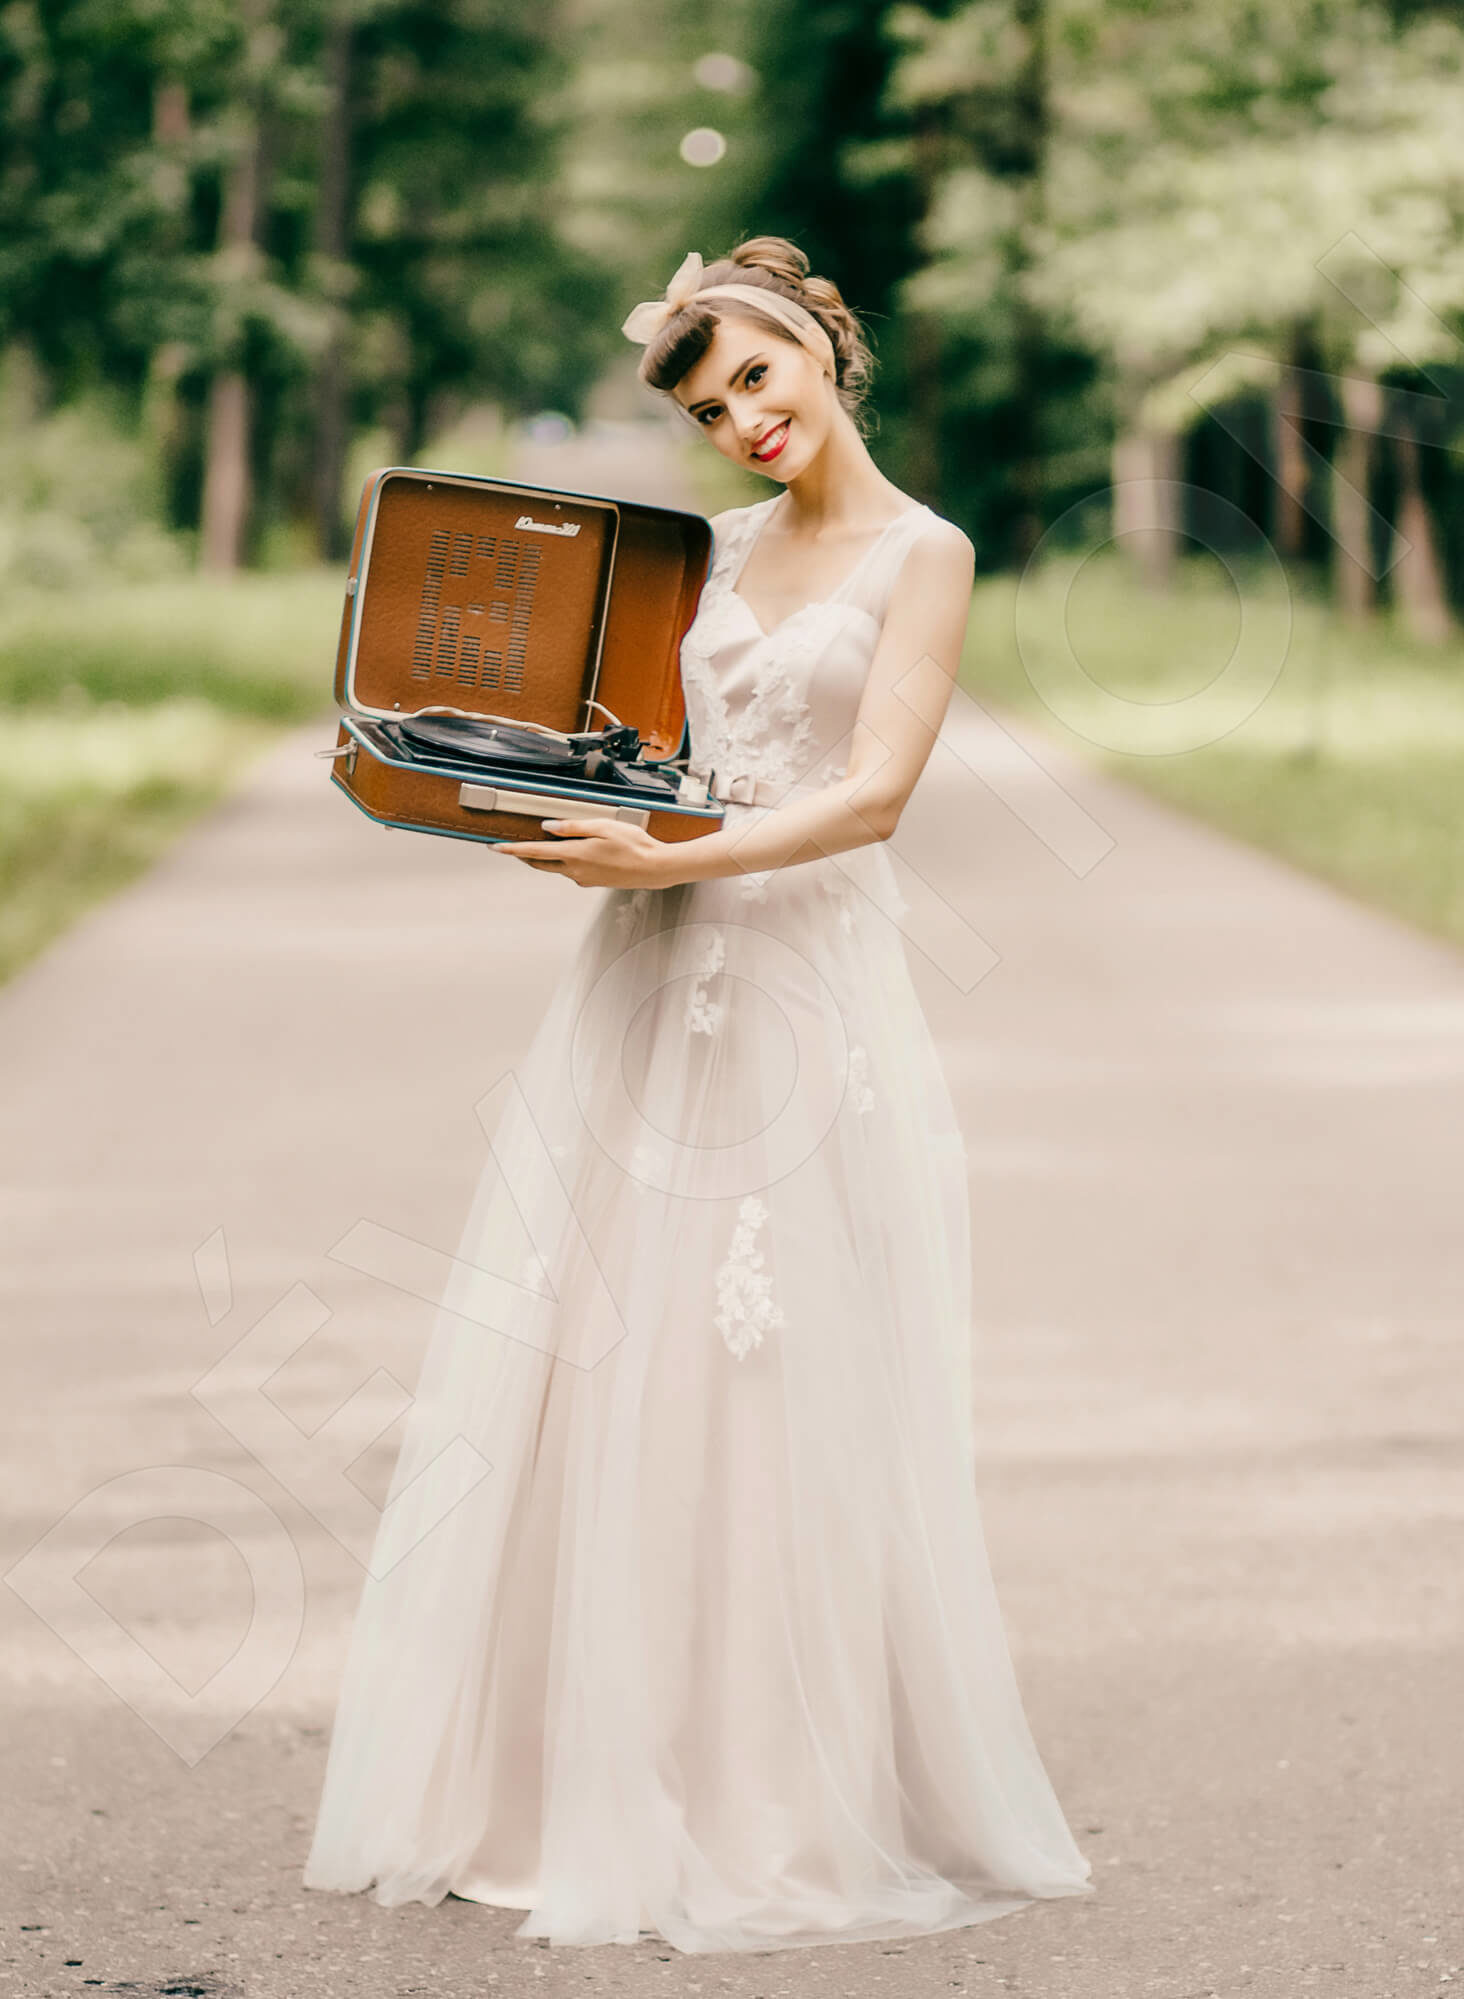 Retro Themed Weddings